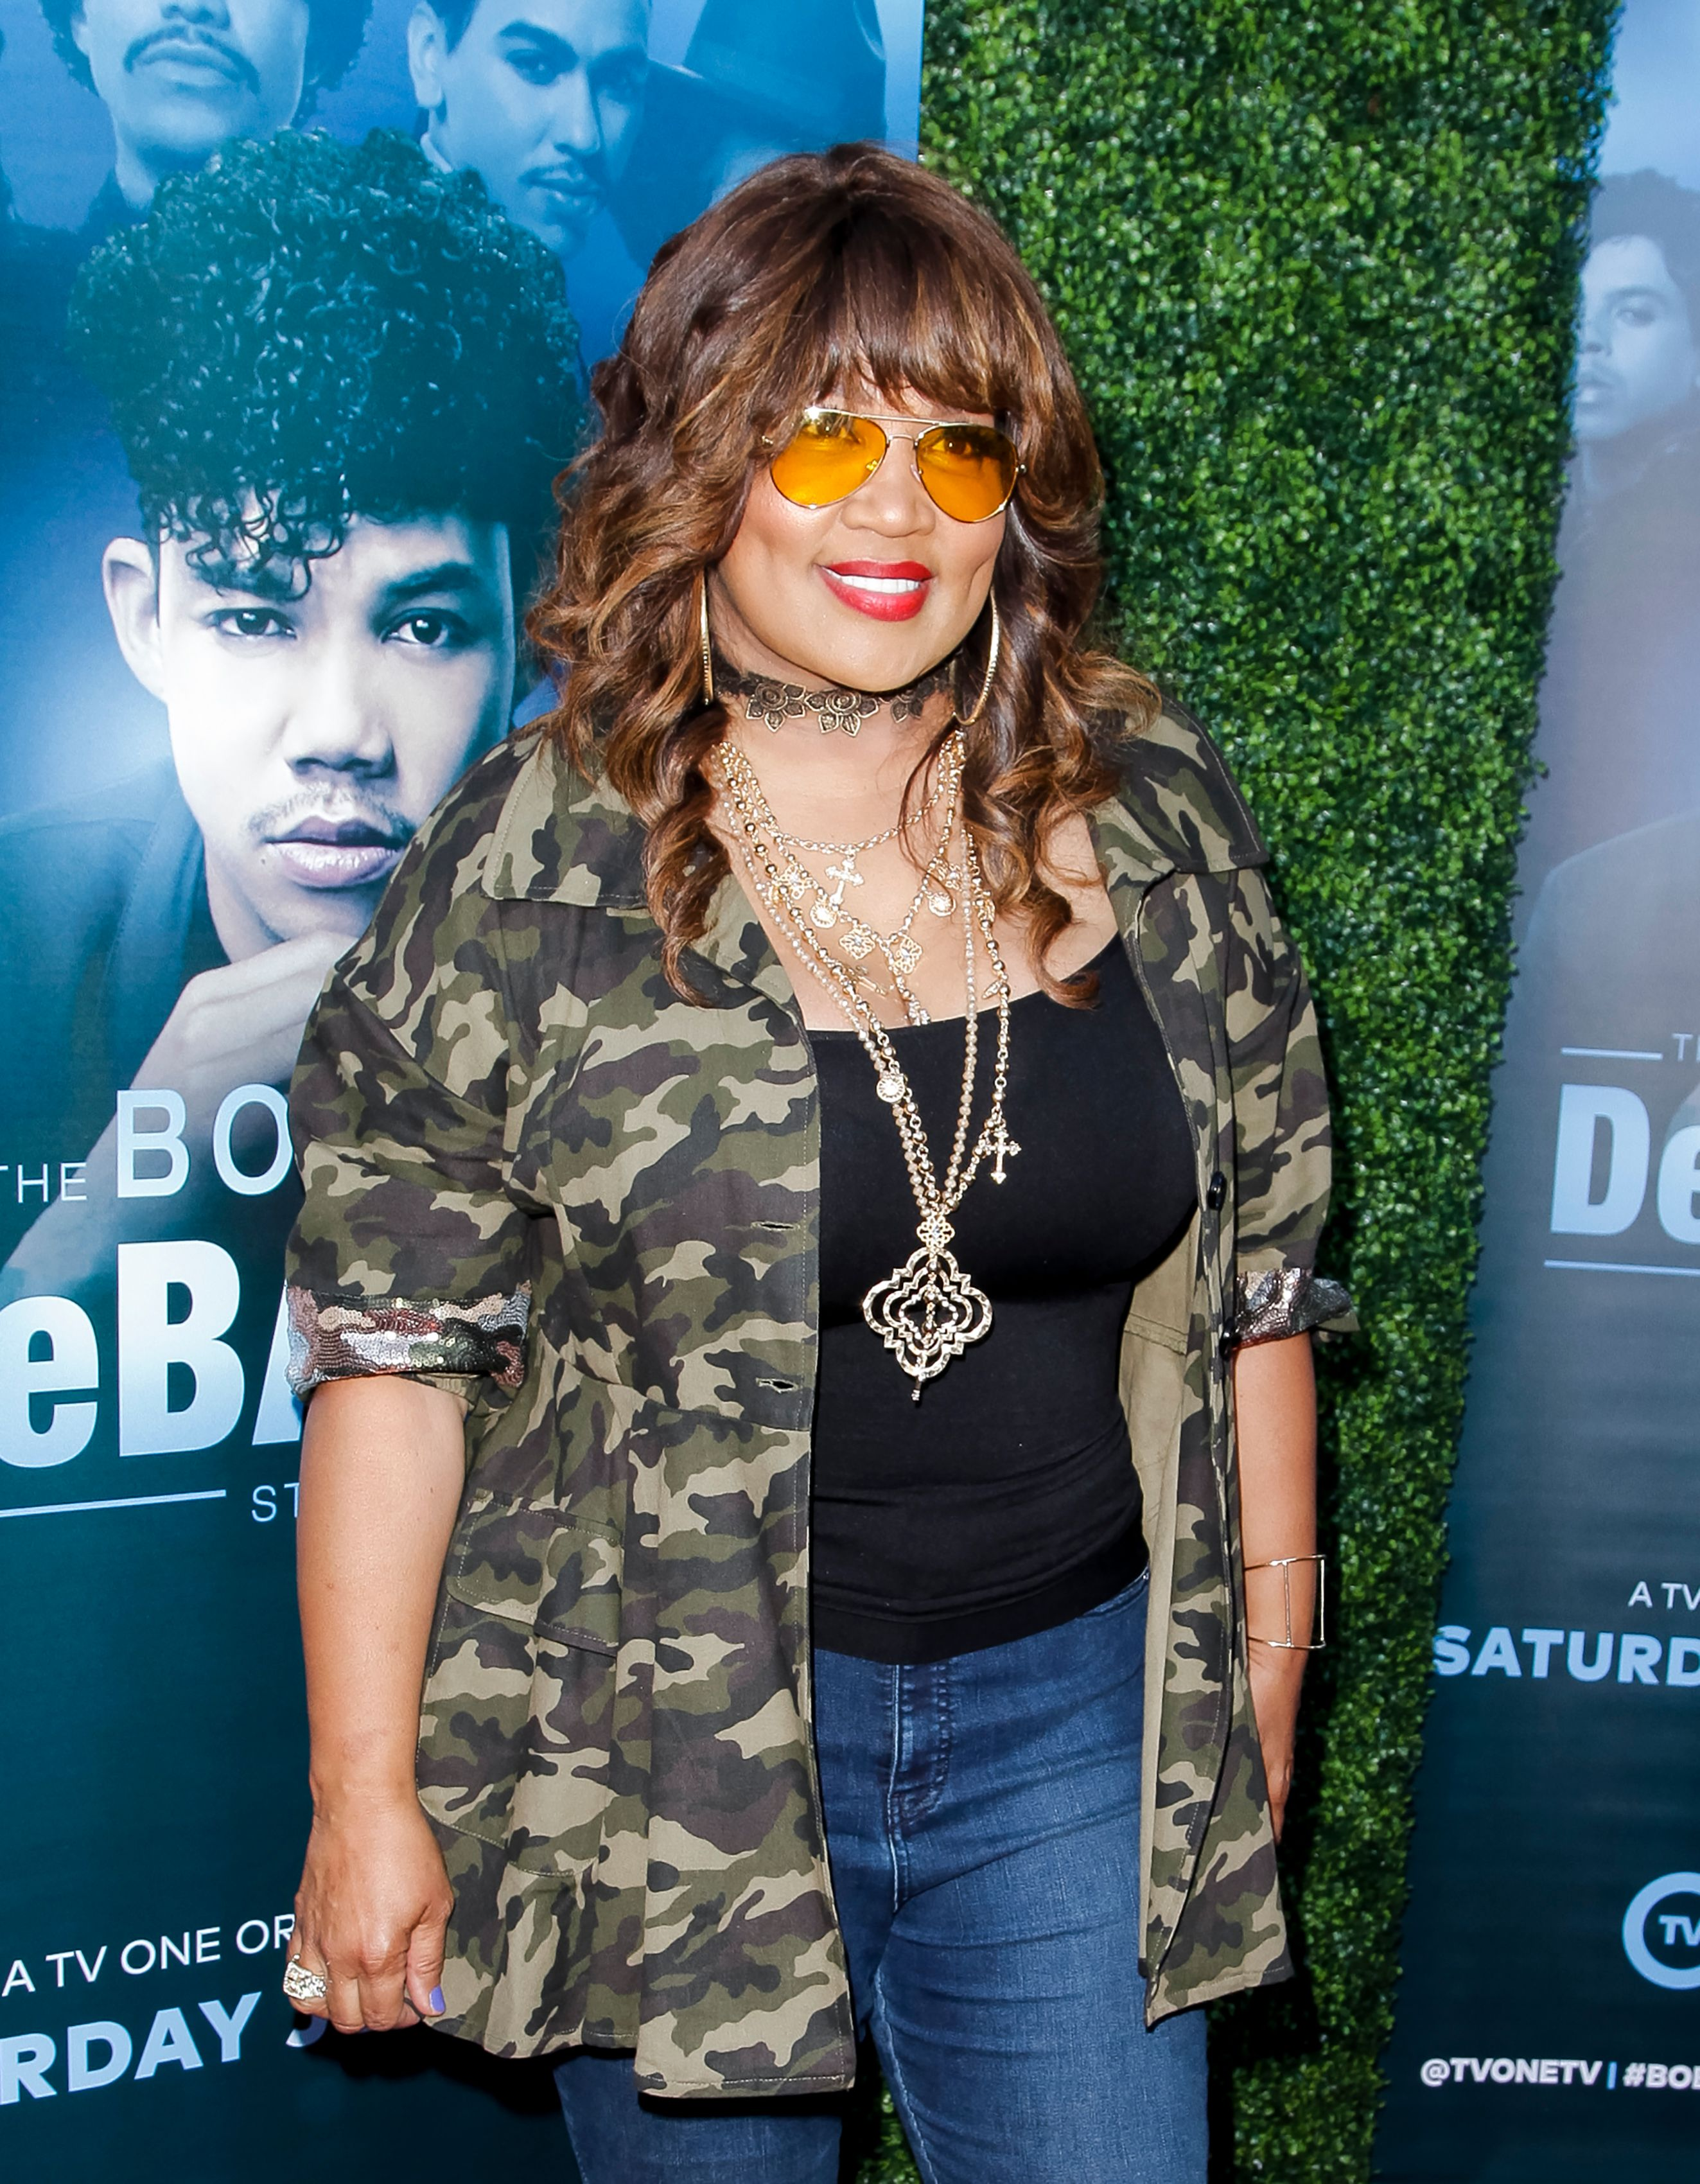 Kym Whitley attends the premiere of TV One's 'Bobby DeBarge Story' at Harmony Gold Theatre on June 26, 2019 in Los Angeles, California. | Photo: Getty Images